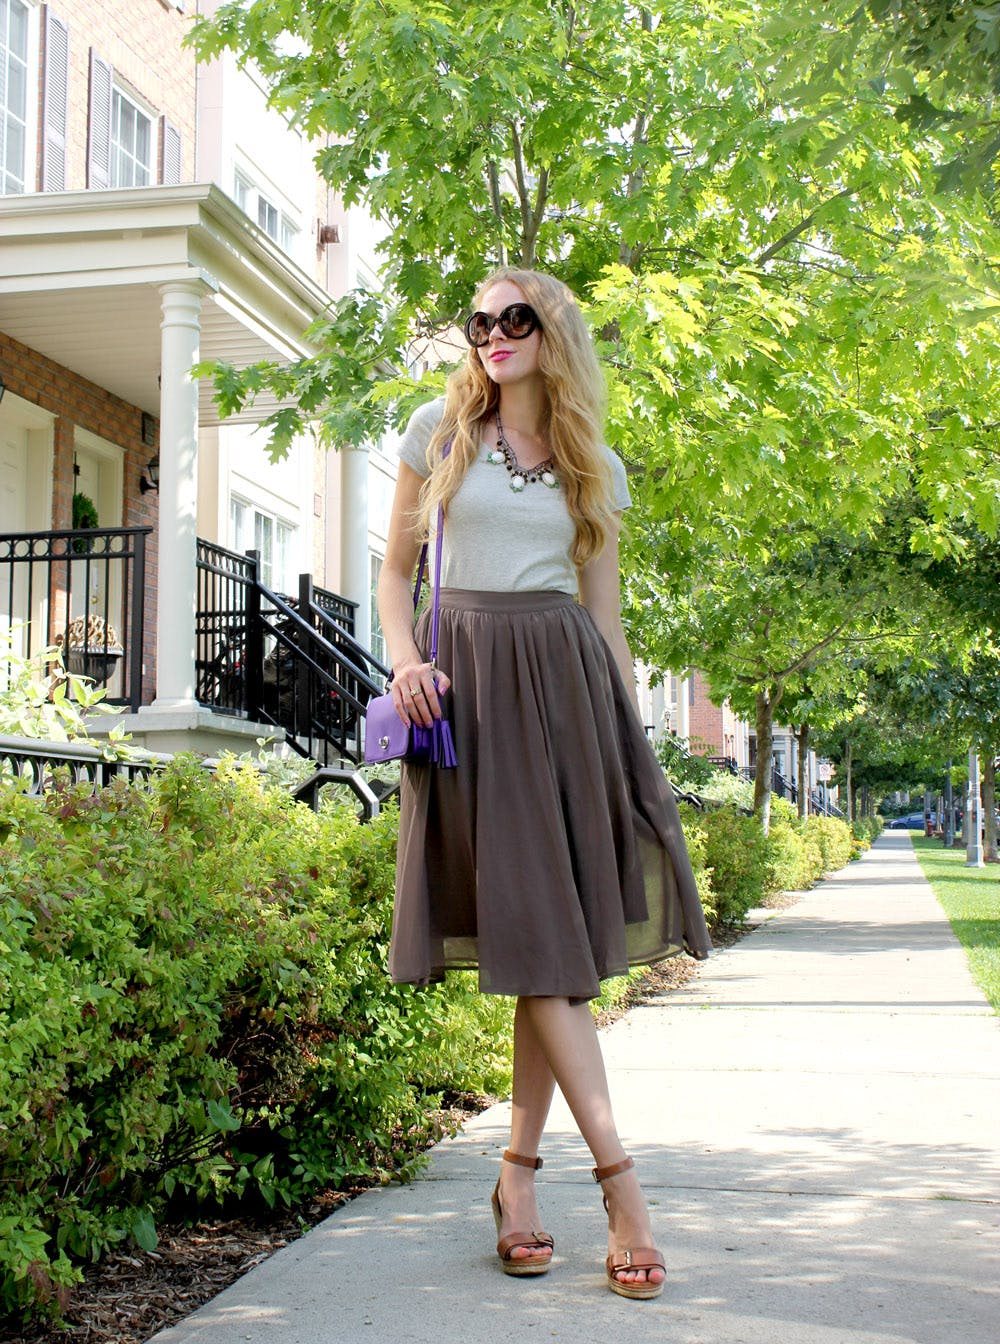 Skirts that go from summer to fall